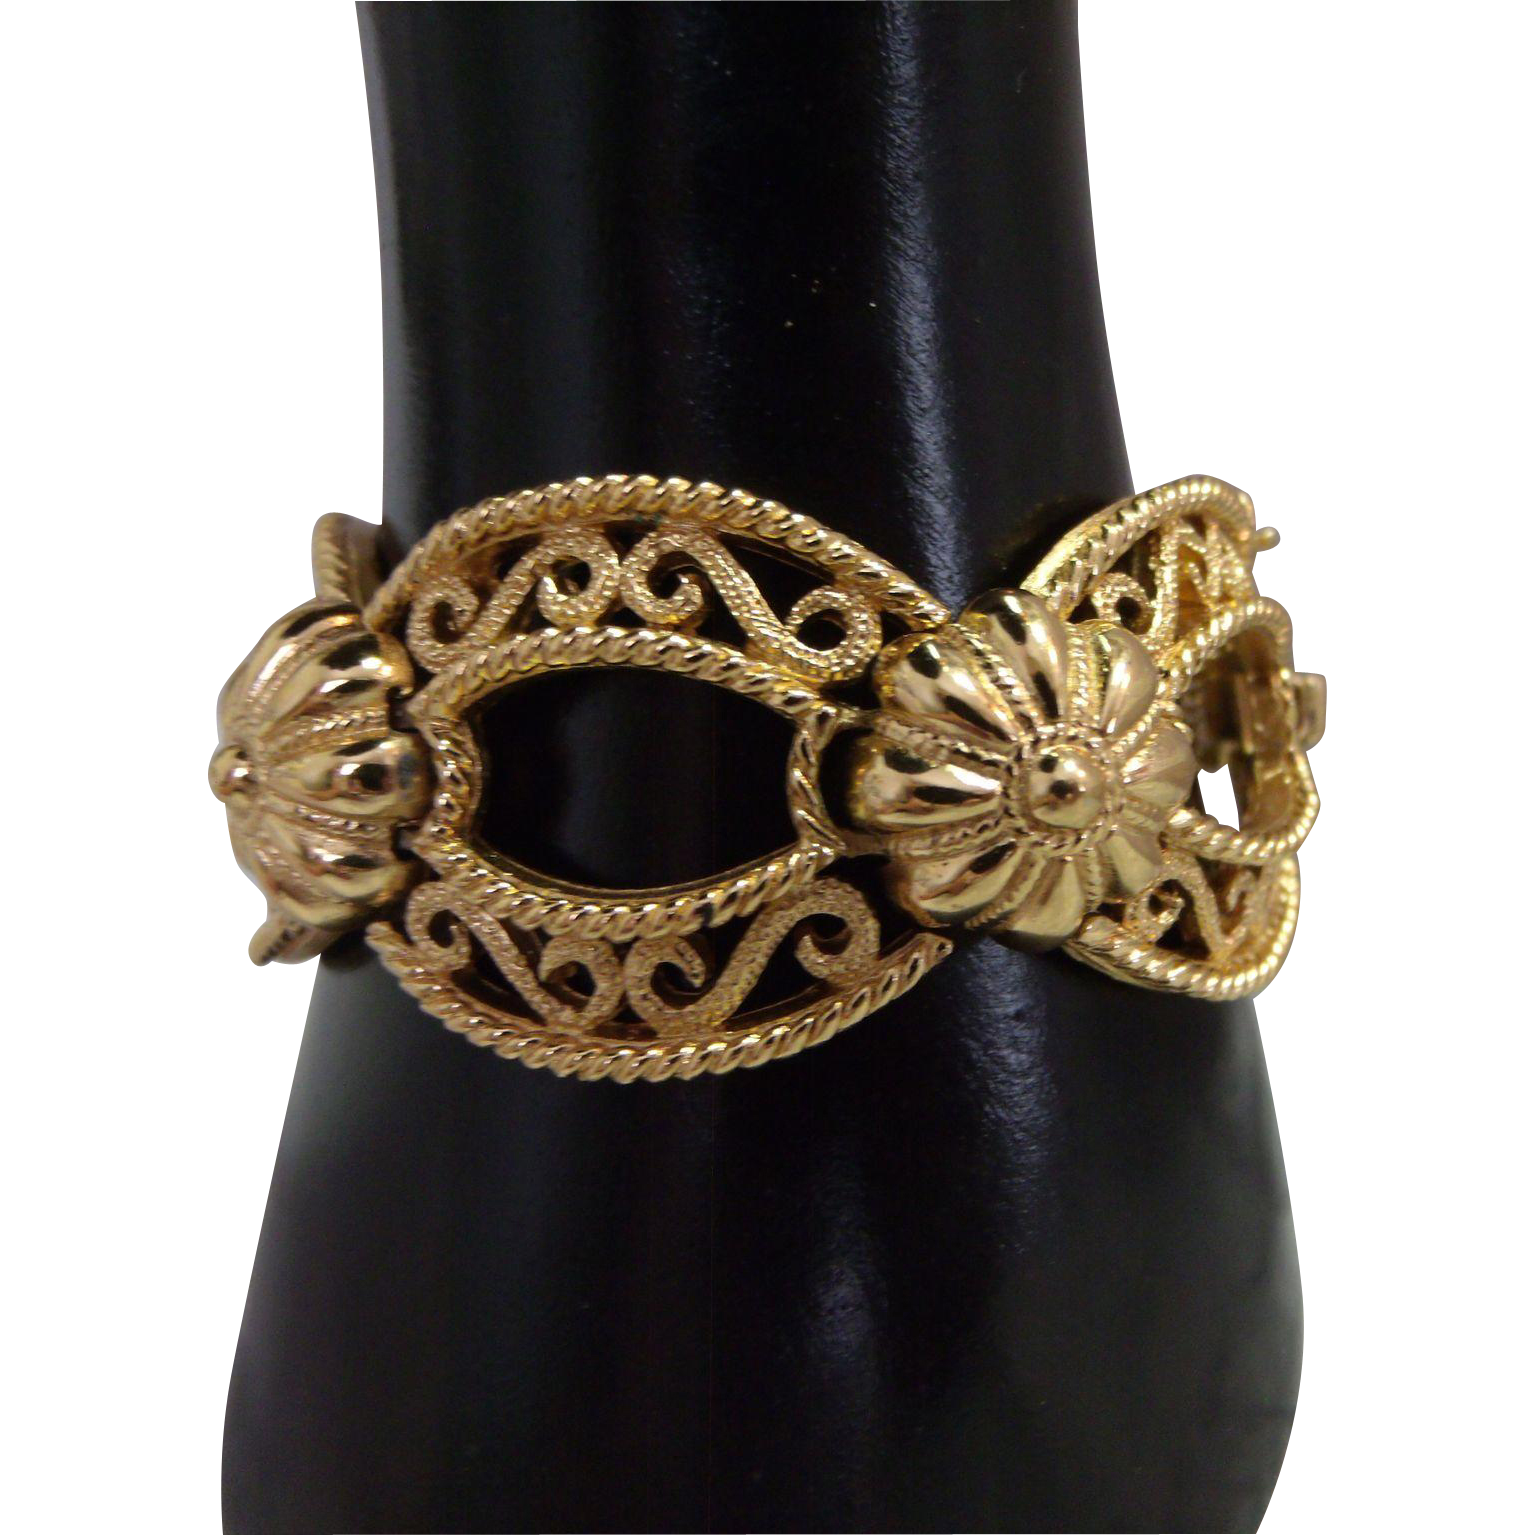 Signed Crown Trifari Bracelet Gold tone Filigree links & safety chain